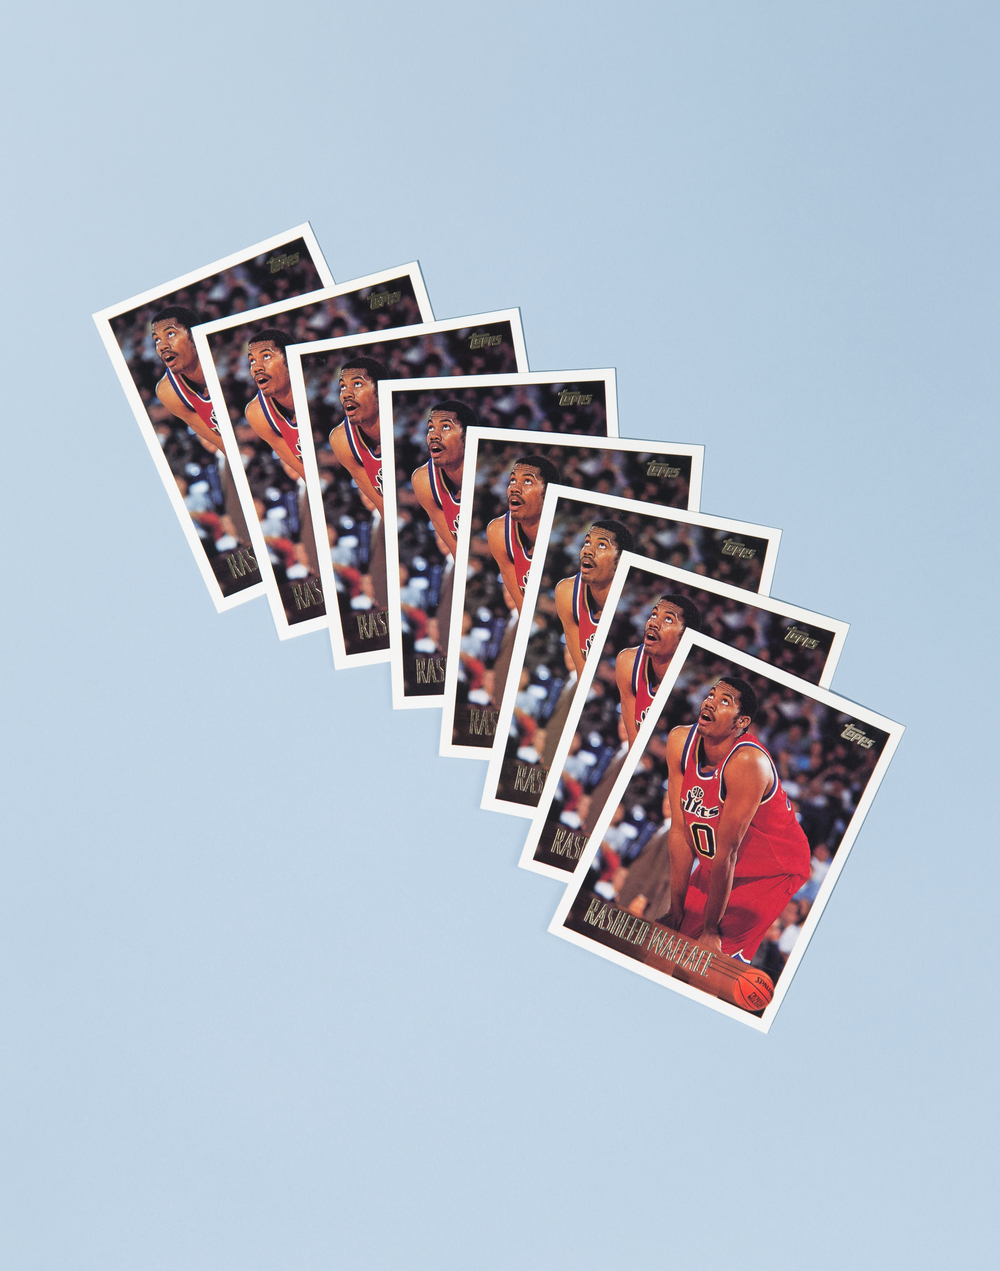 Rasheed Wallace Multiple (Eight Topps 1996-1997 Rasheed Wallace Cards)